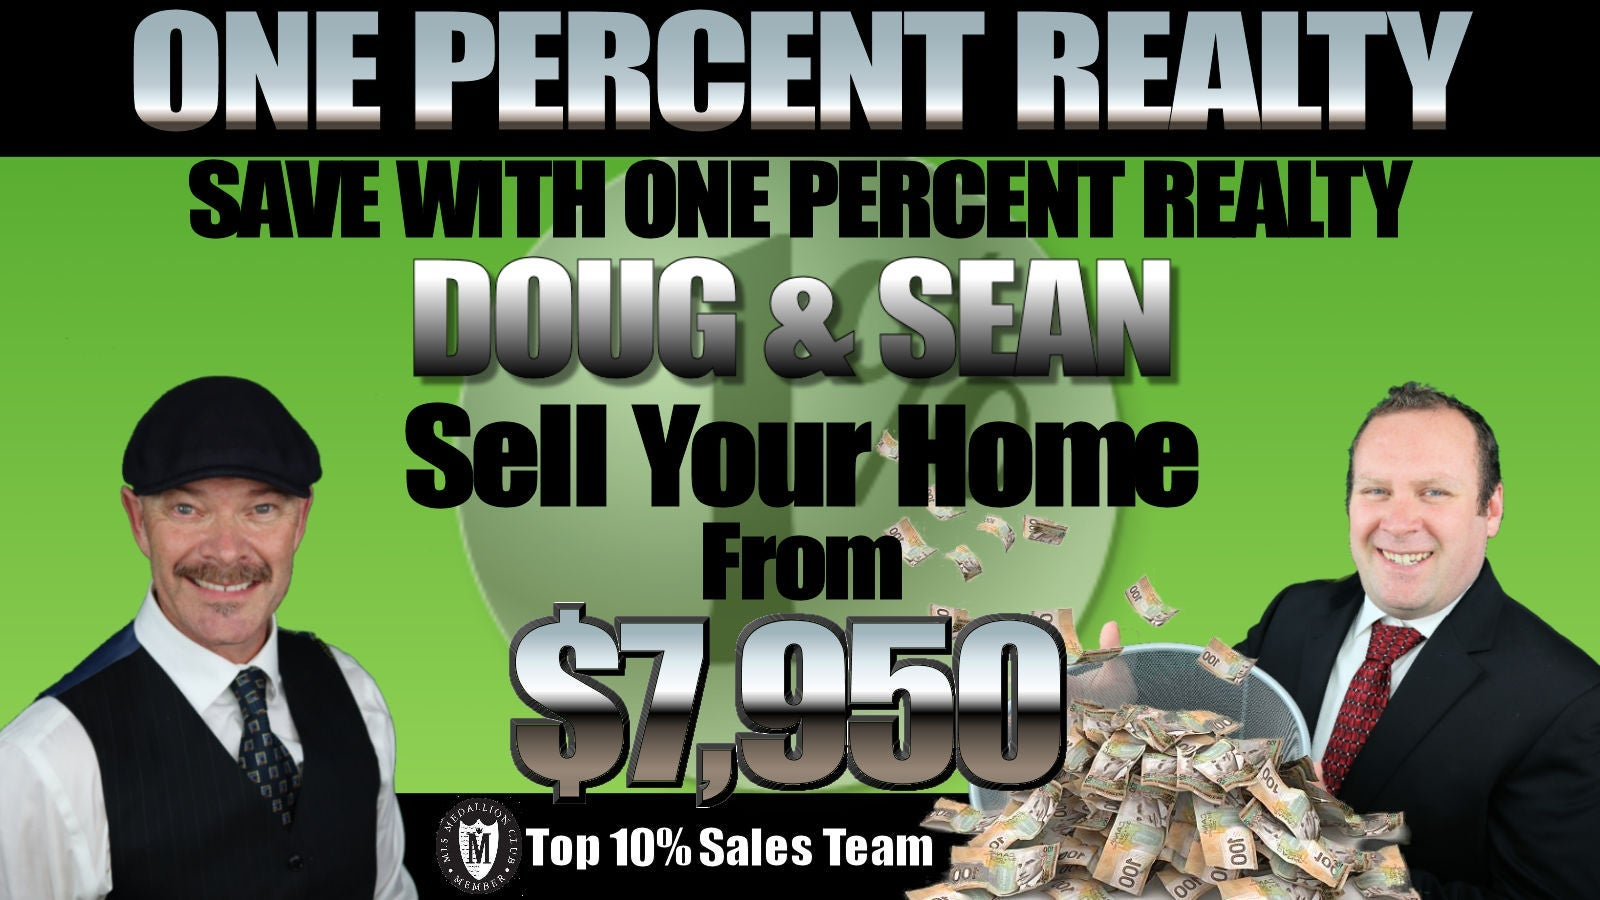 Flat Fee MLS Listing Providers One Percent Realty & The Property Finders